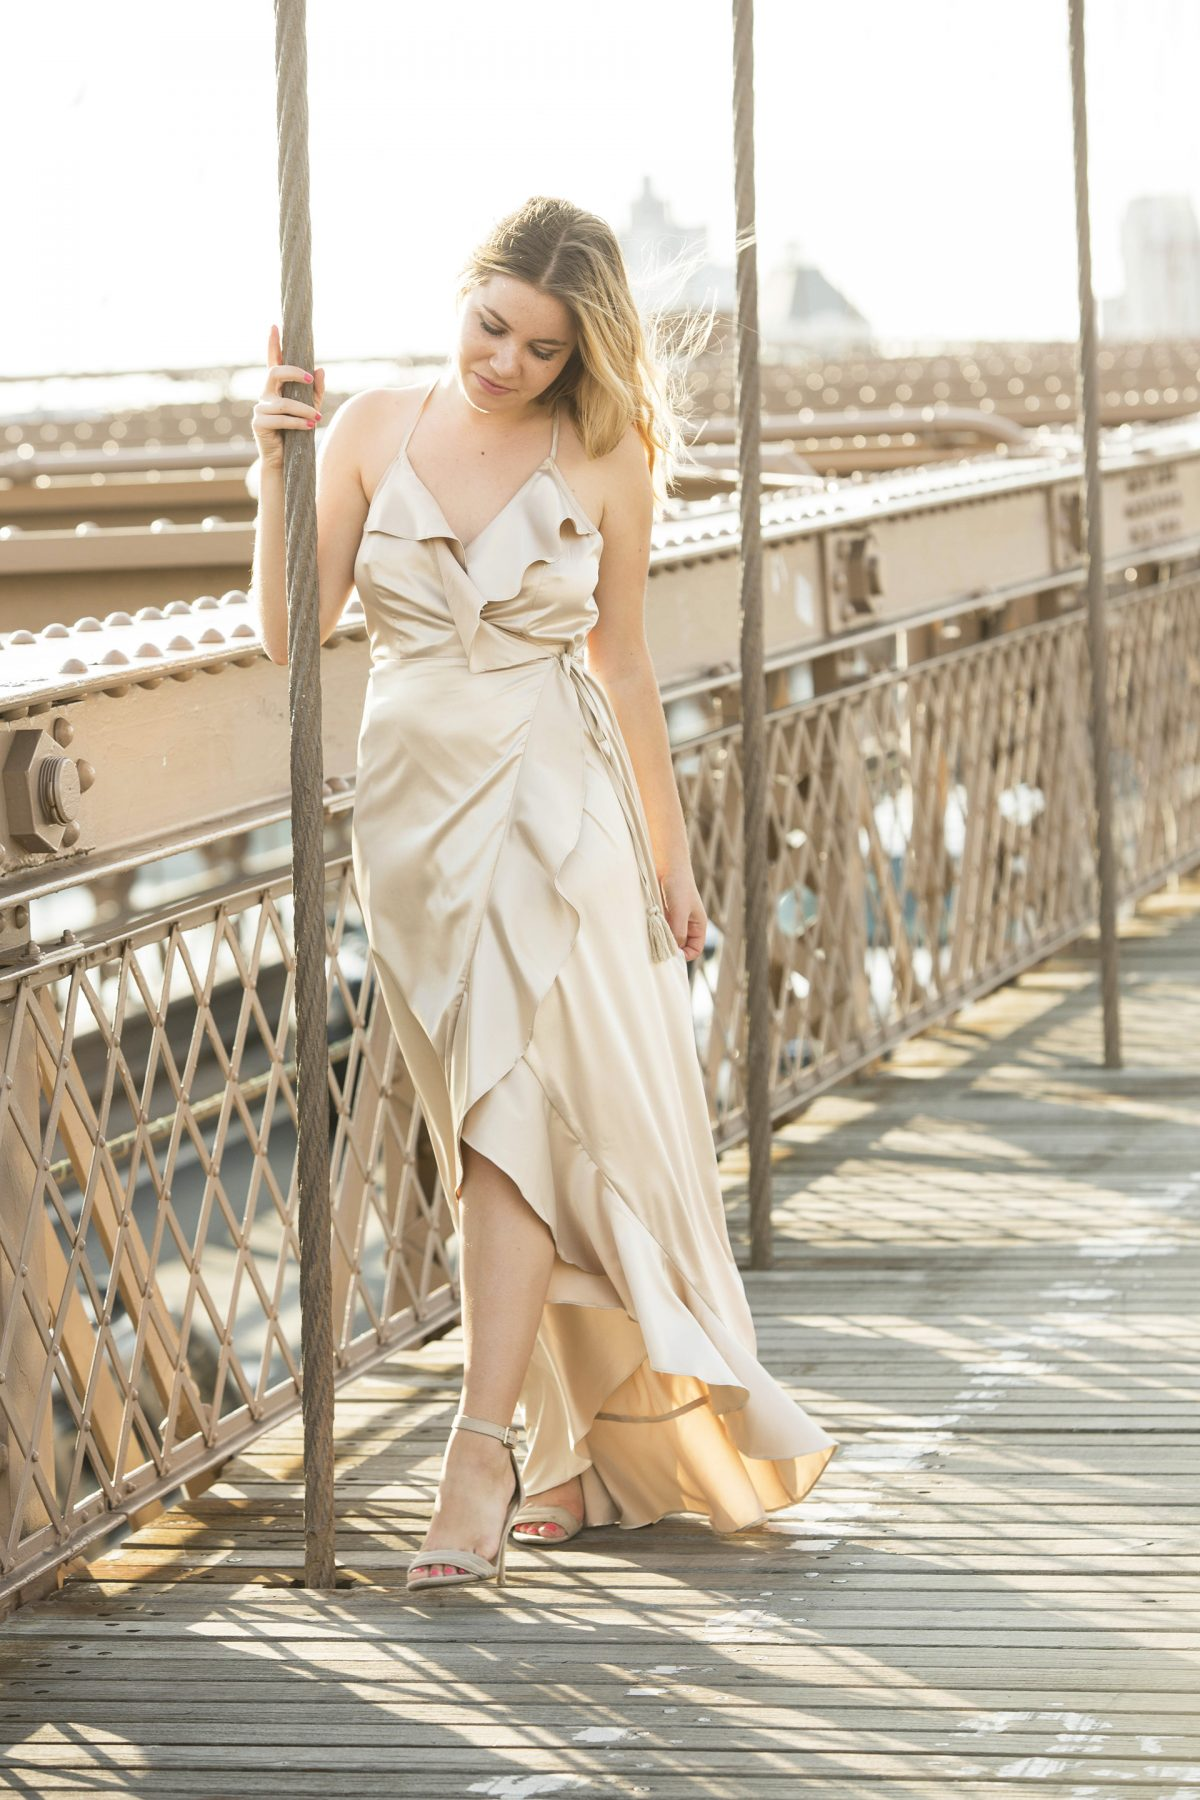 Brooklyn Bridge romantic photo shoot